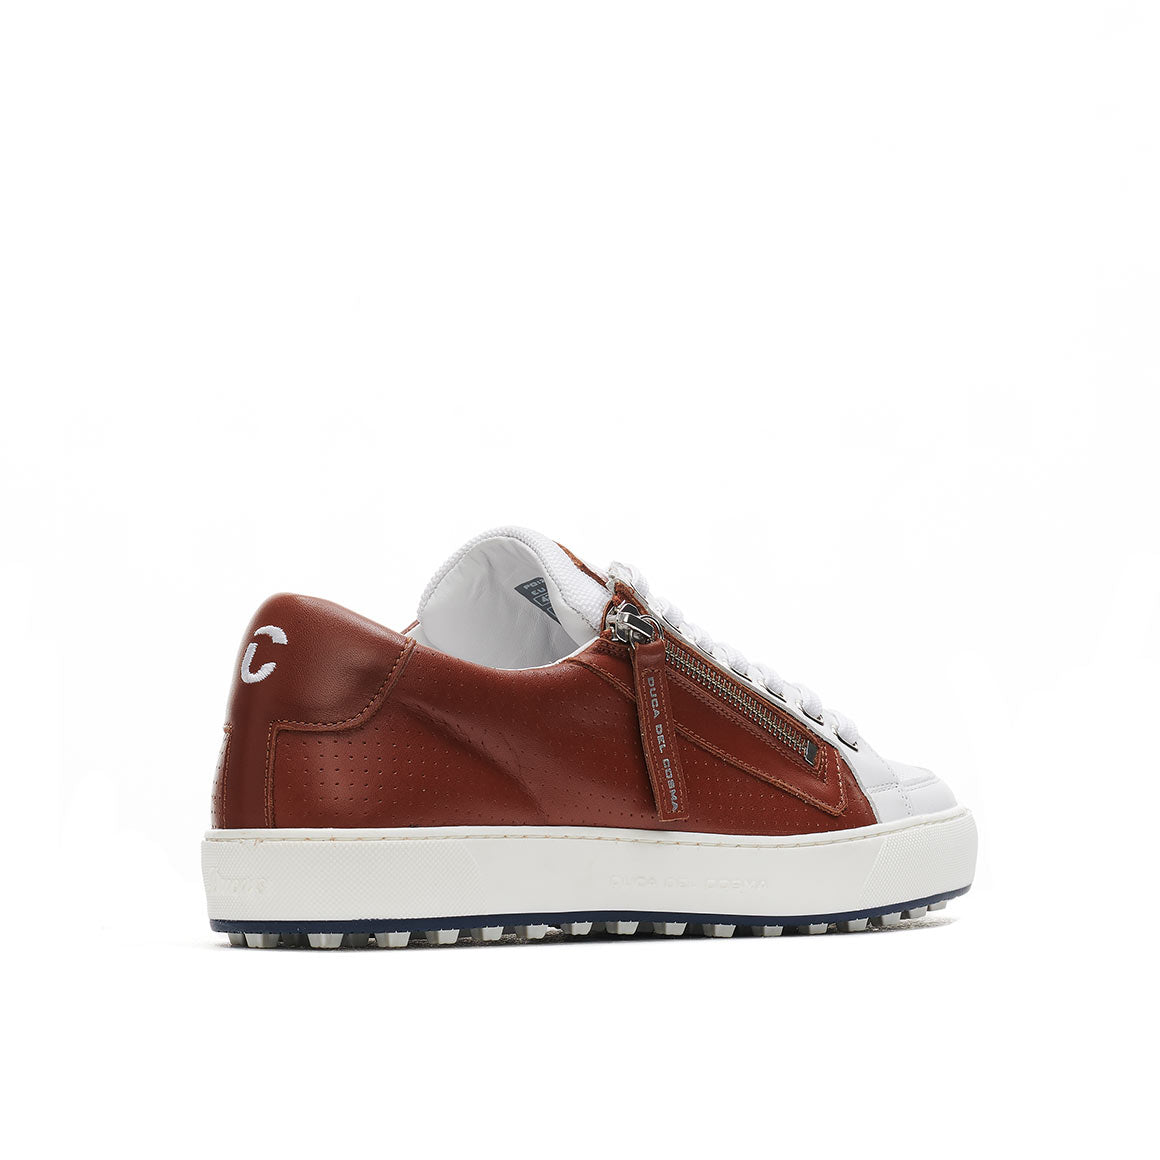 Men's California Cognac / White Golf Sport Shoe